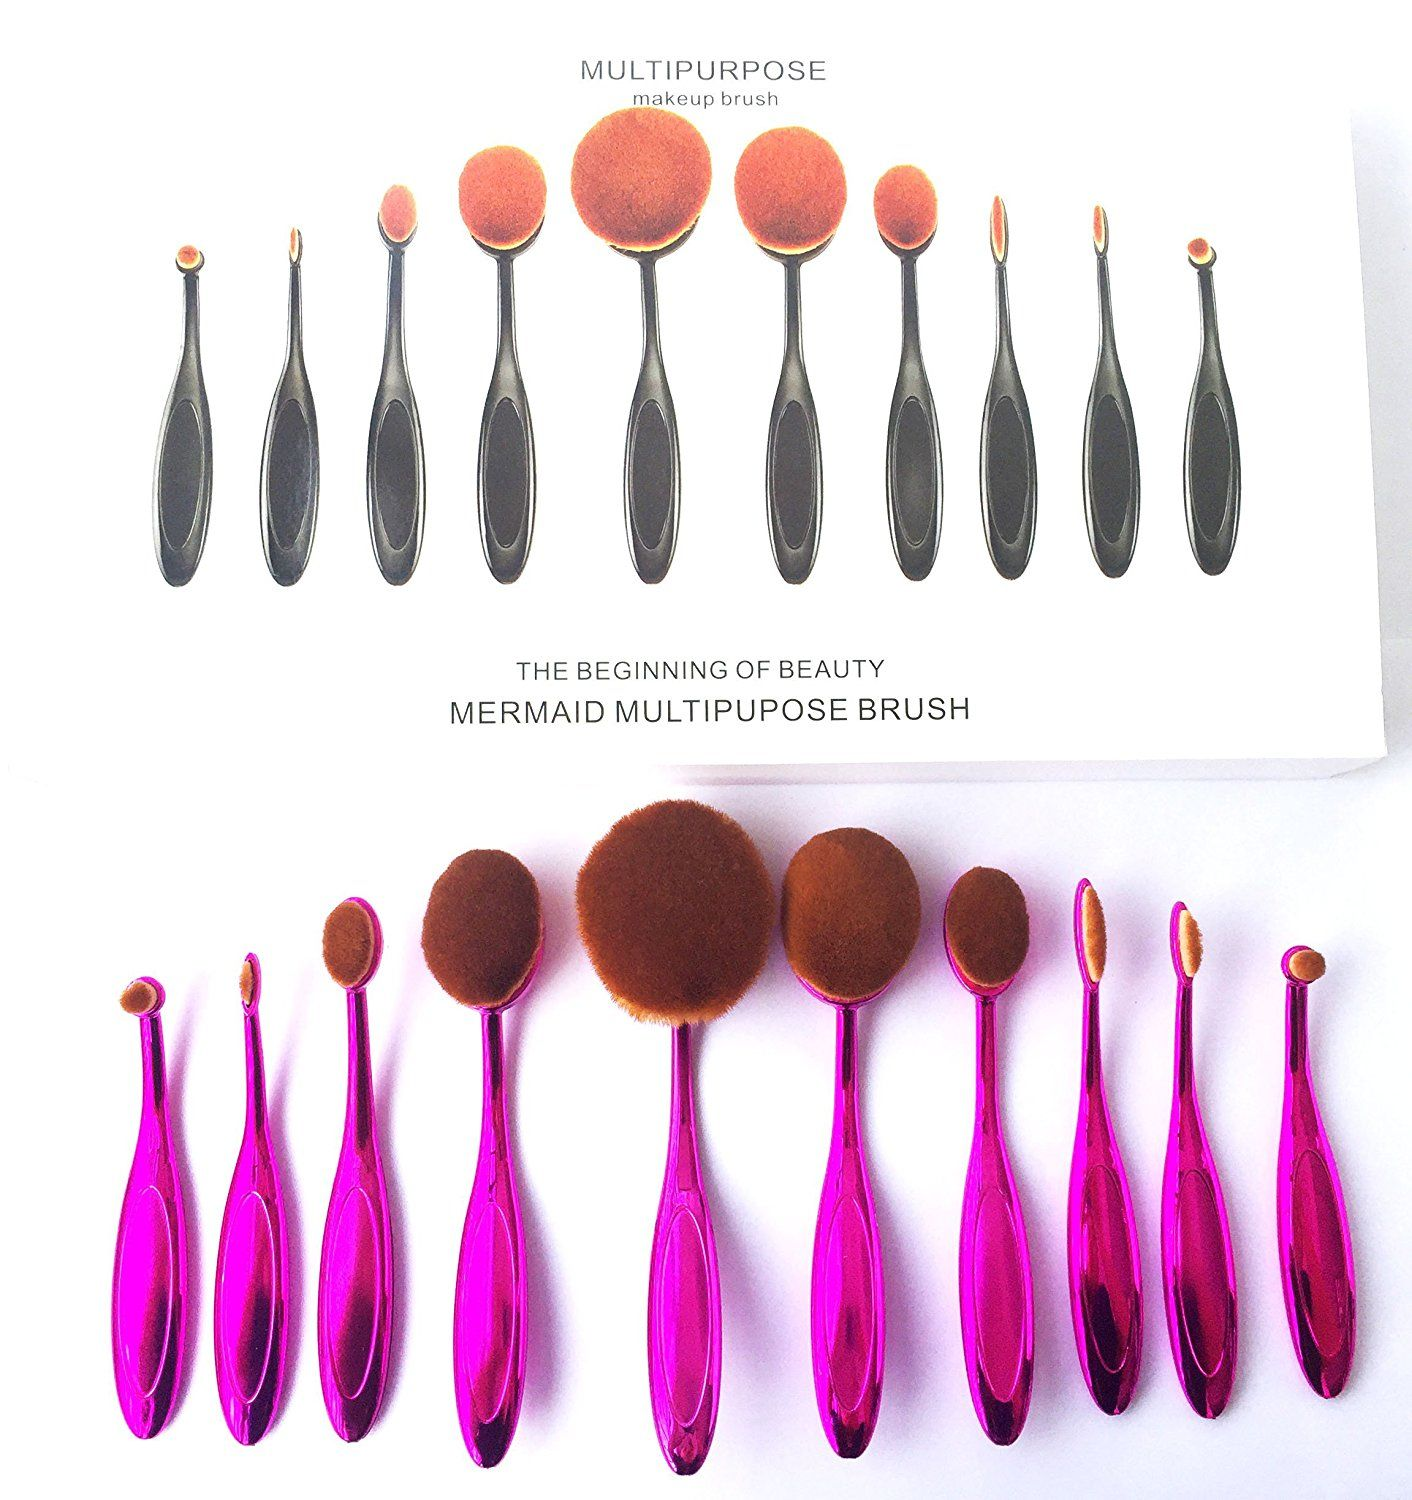 TDream New 10Pcs Soft Elite Oval Toothbrush Makeup Brush Set Foundation Brushes Cream Contour Powder Blush Concealer Brush Makeup Cosmetics Tool Set(Purple) ** To view further for this item, visit the image link.